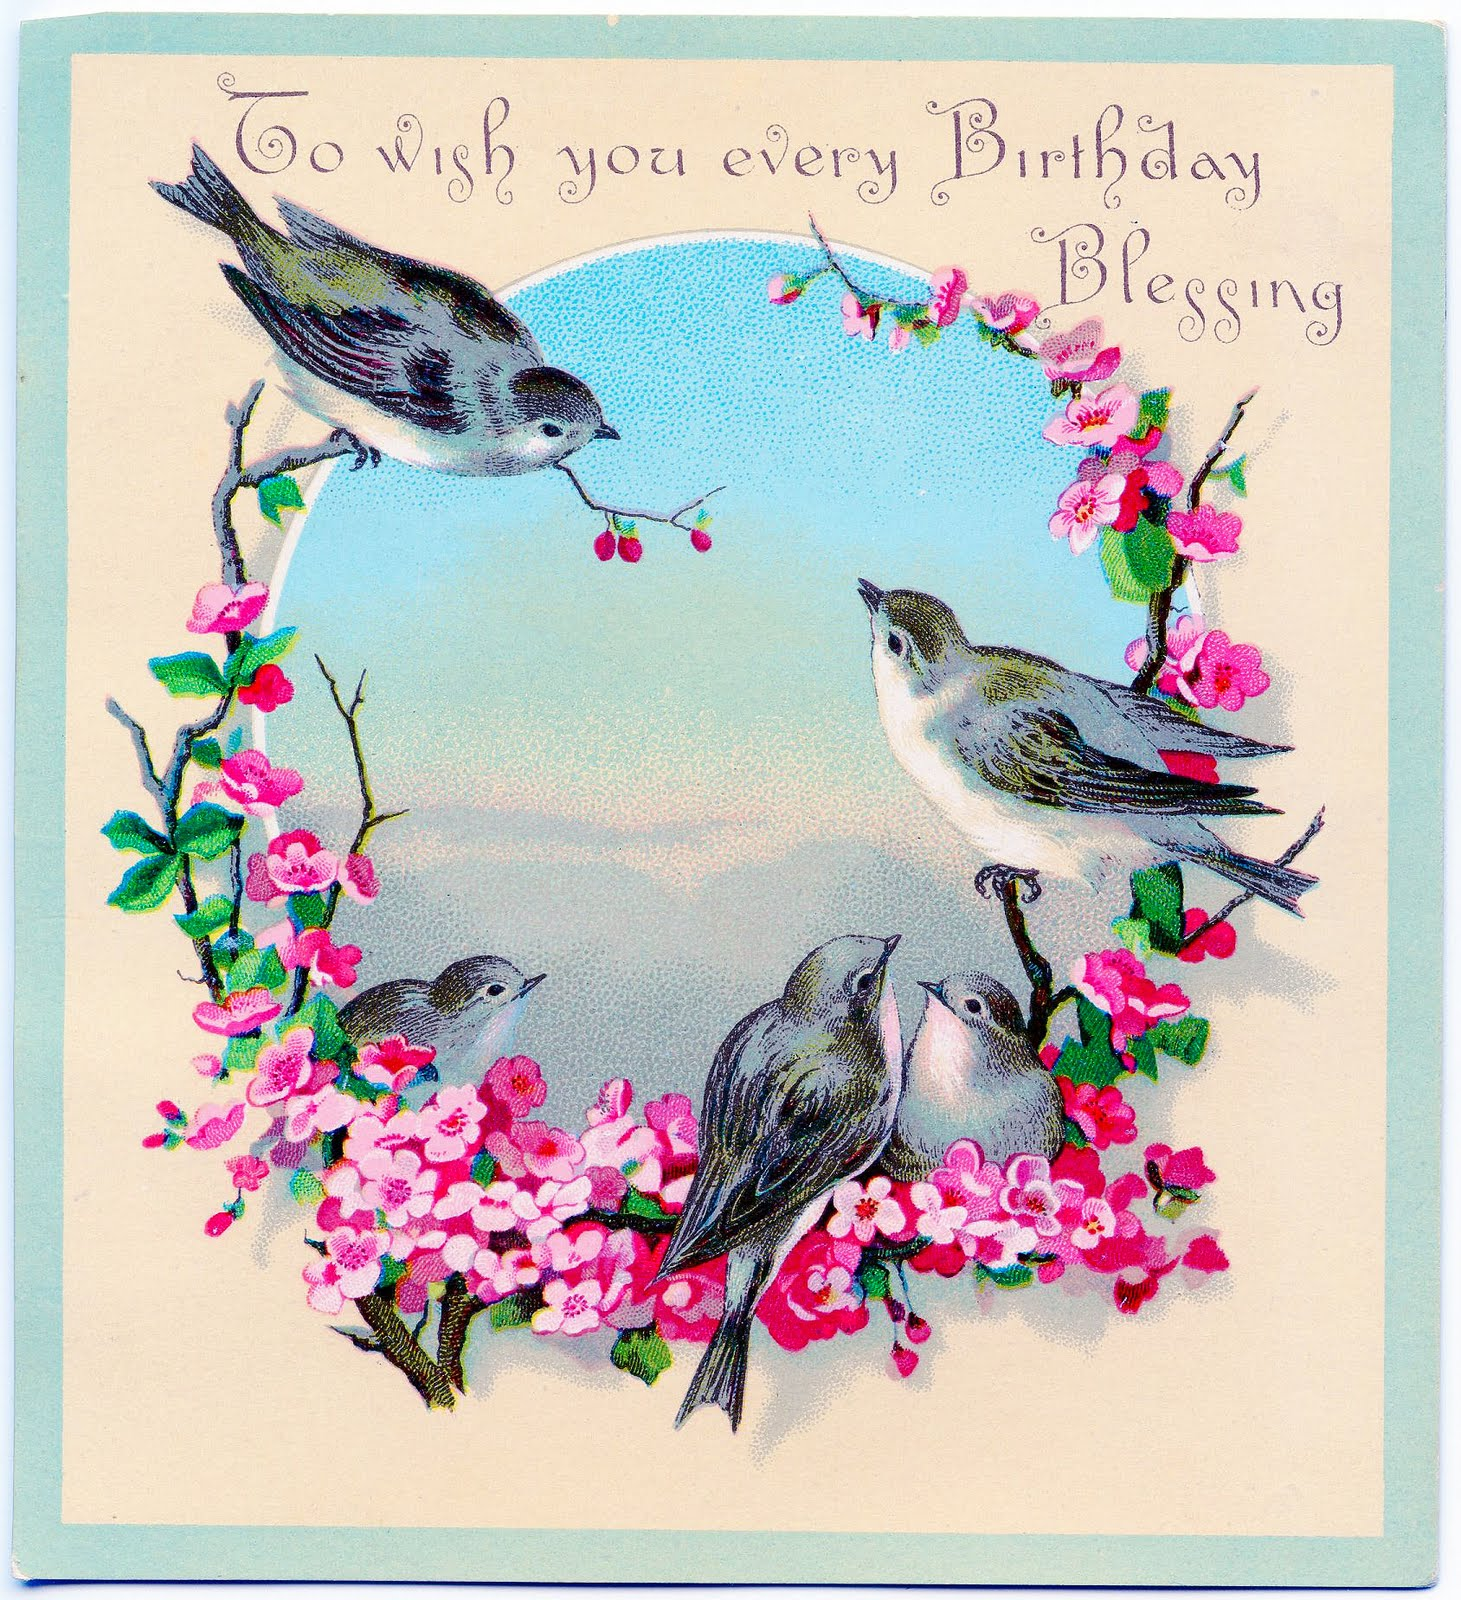 free clipart birthday wishes 20 free Cliparts | Download